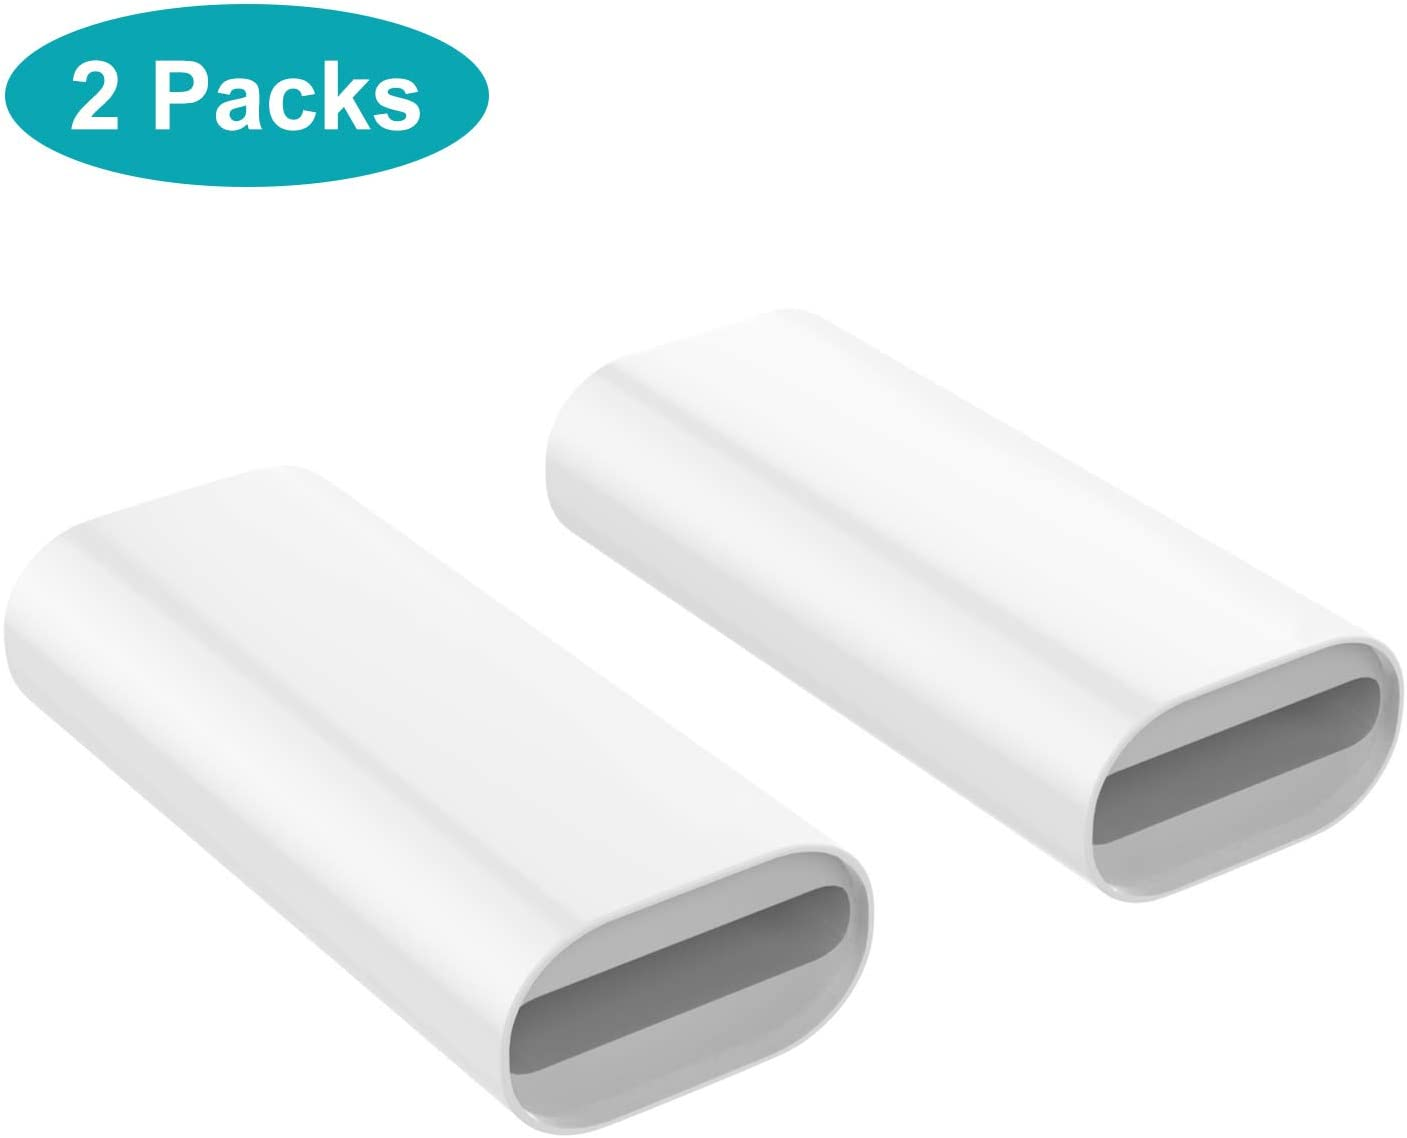 MoKo Charging Adapter Compatible with Apple Pencil 1st, Connector Charger Cable Compatible with iPad Air 3 / iPad Mini 5 2019 / iPad Pro 12.9 10.5 9.7 Pen Accessories, (2 Pack, White)